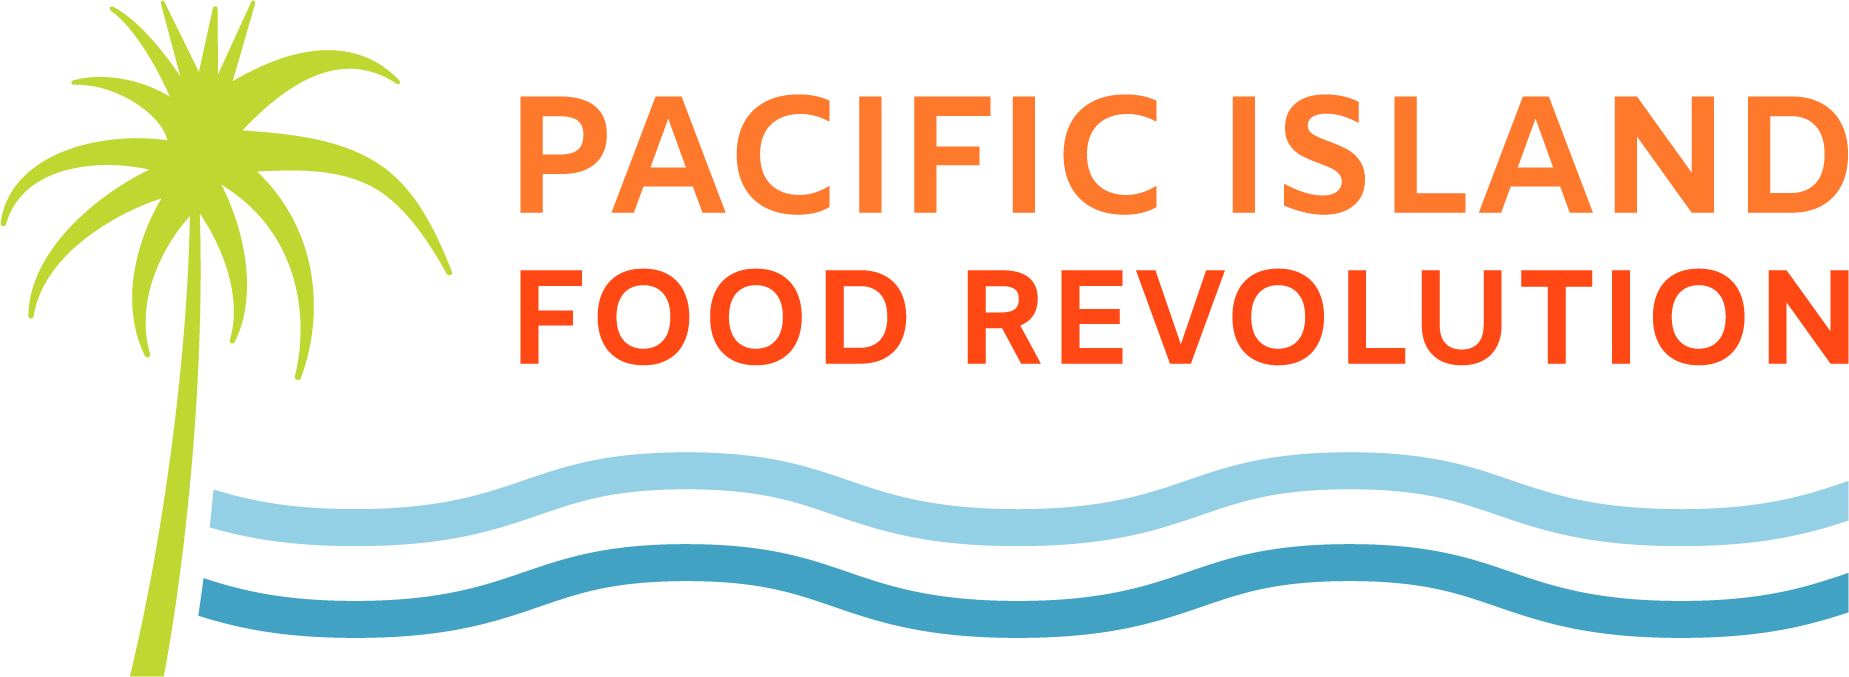 Pacific Island Food Revolution Logo